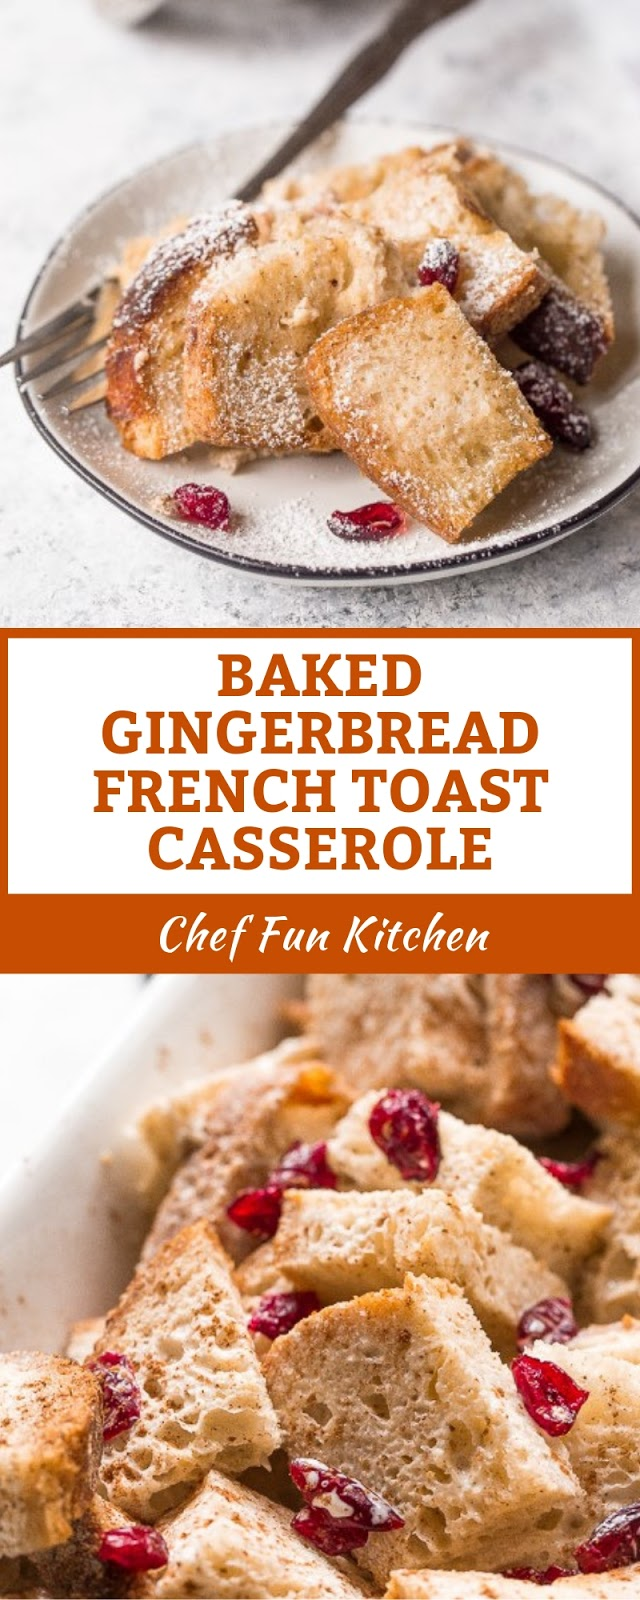 BAKED GINGERBREAD FRENCH TOAST CASSEROLE